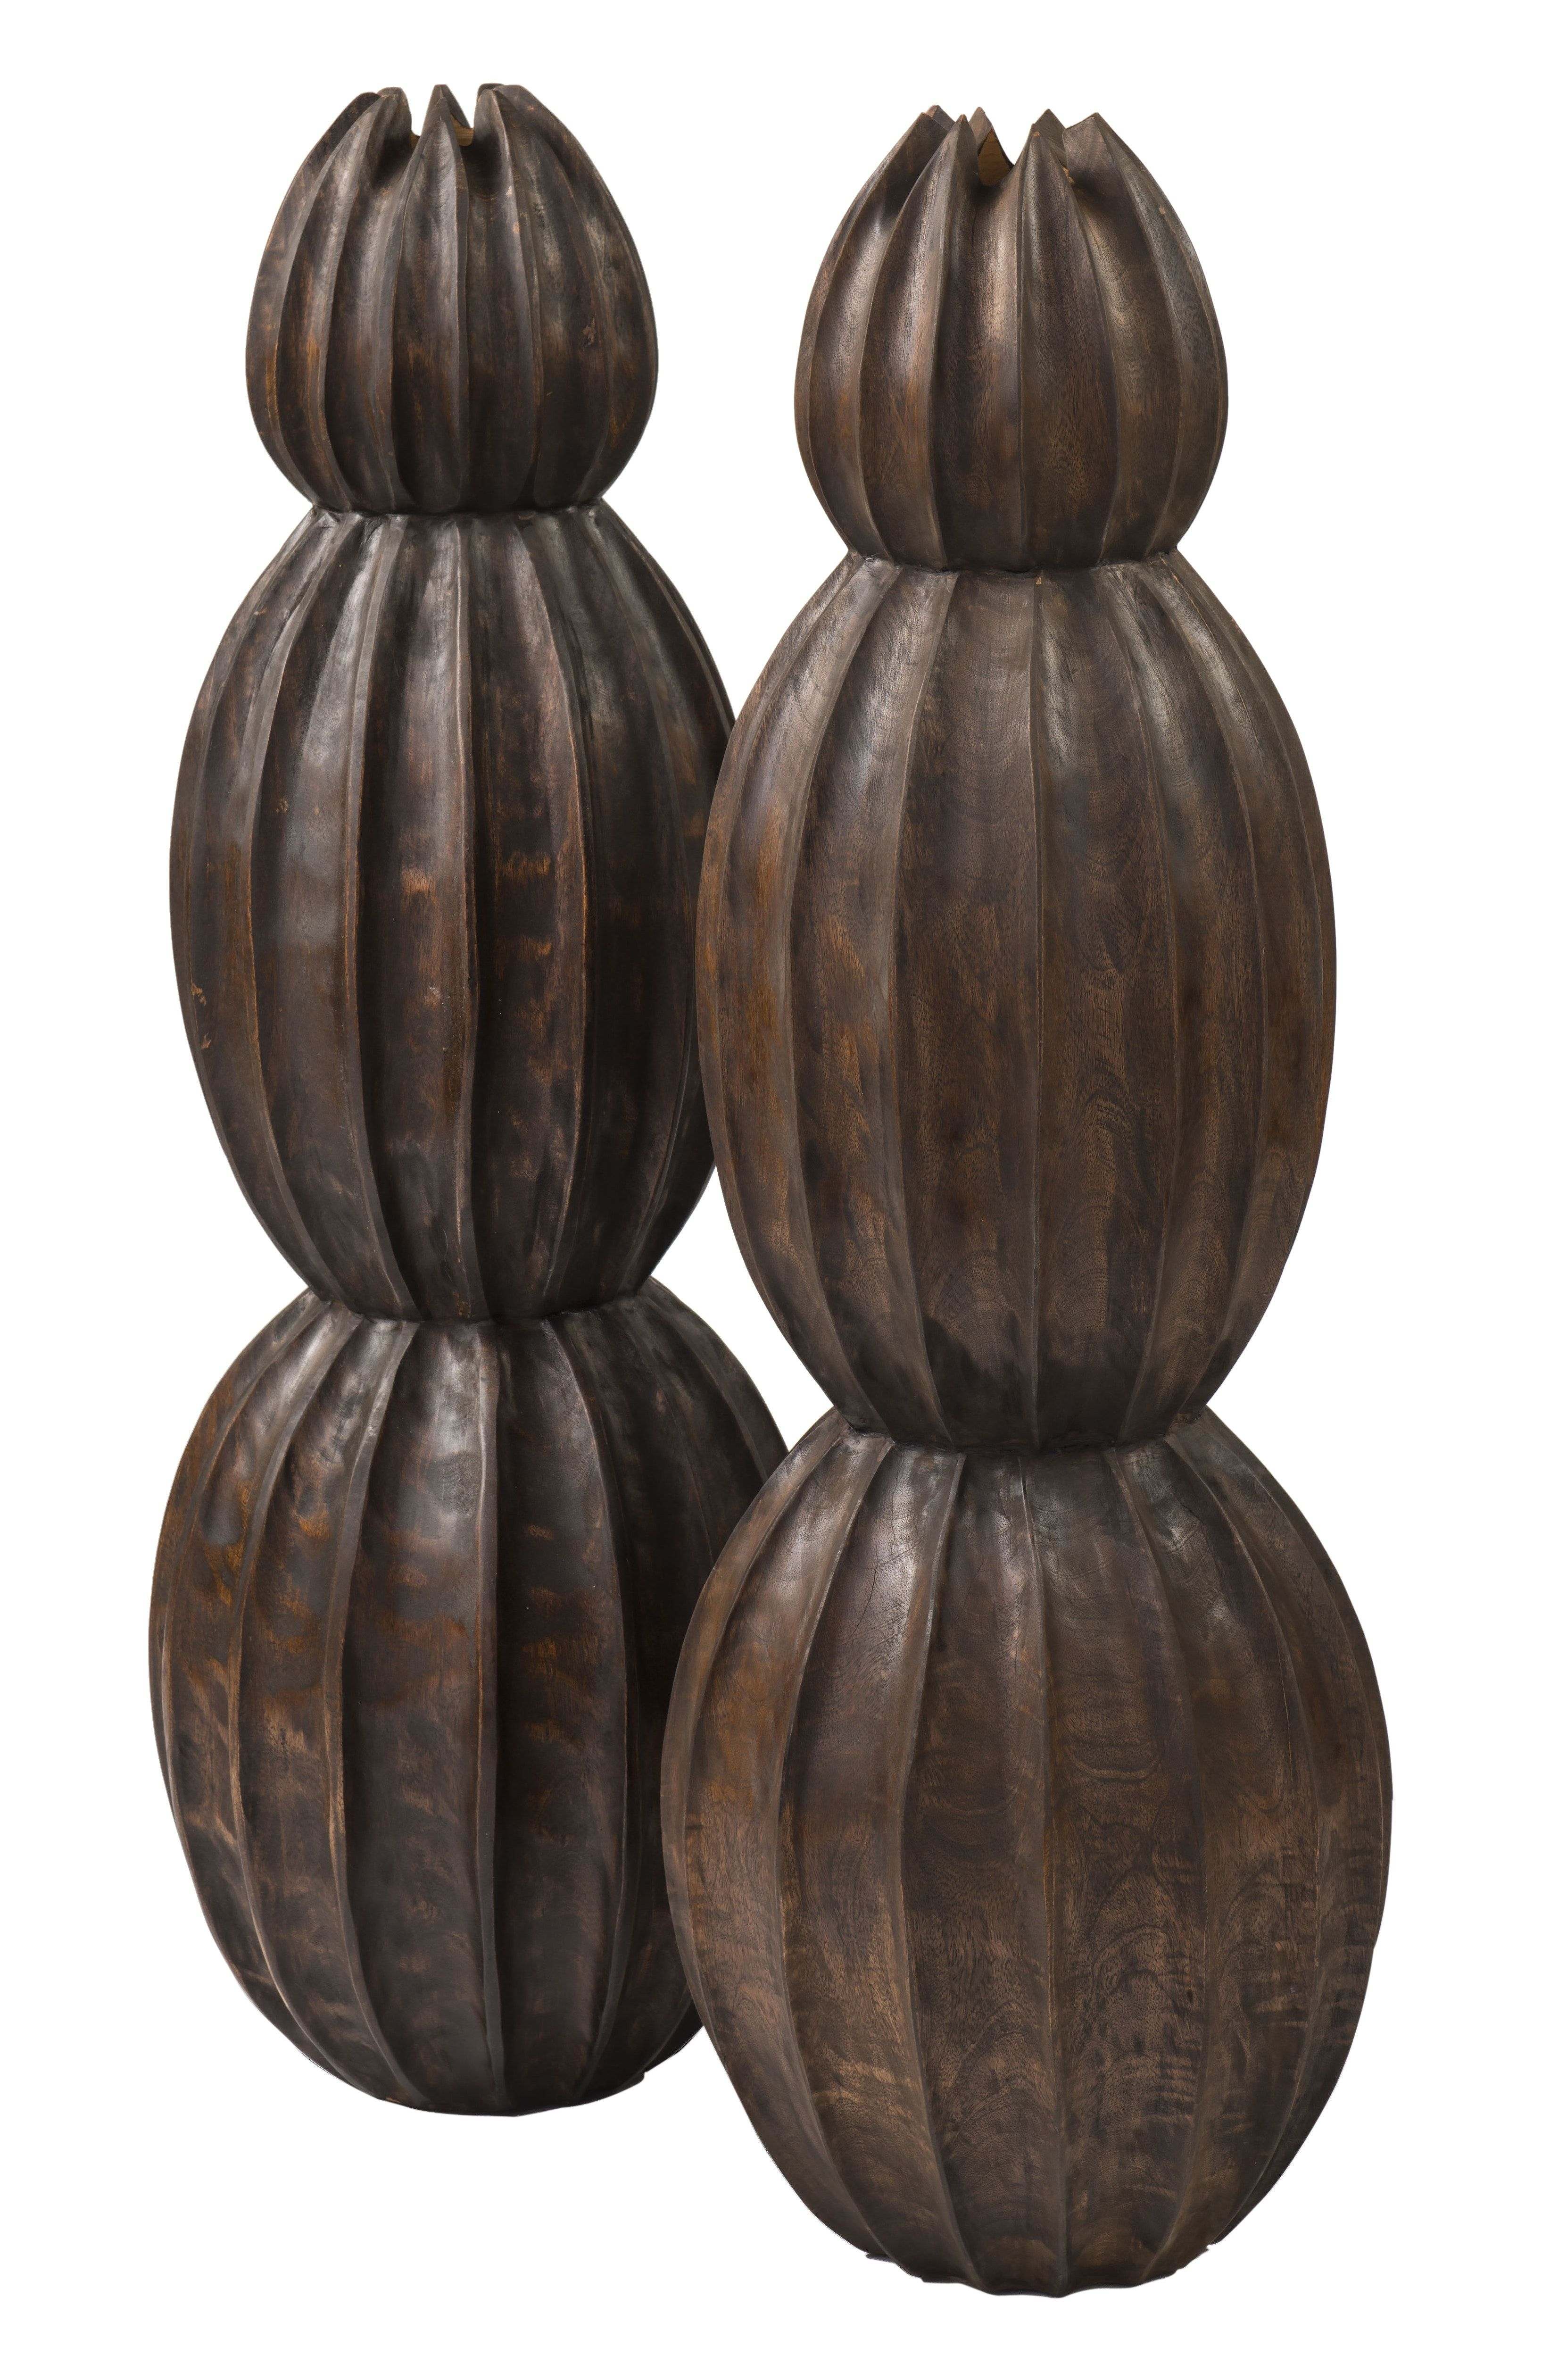 Buy Teak Vessels By Brenda Houston   Quick Ship Designer Accessories From  Dering Hallu0027s Collection Of